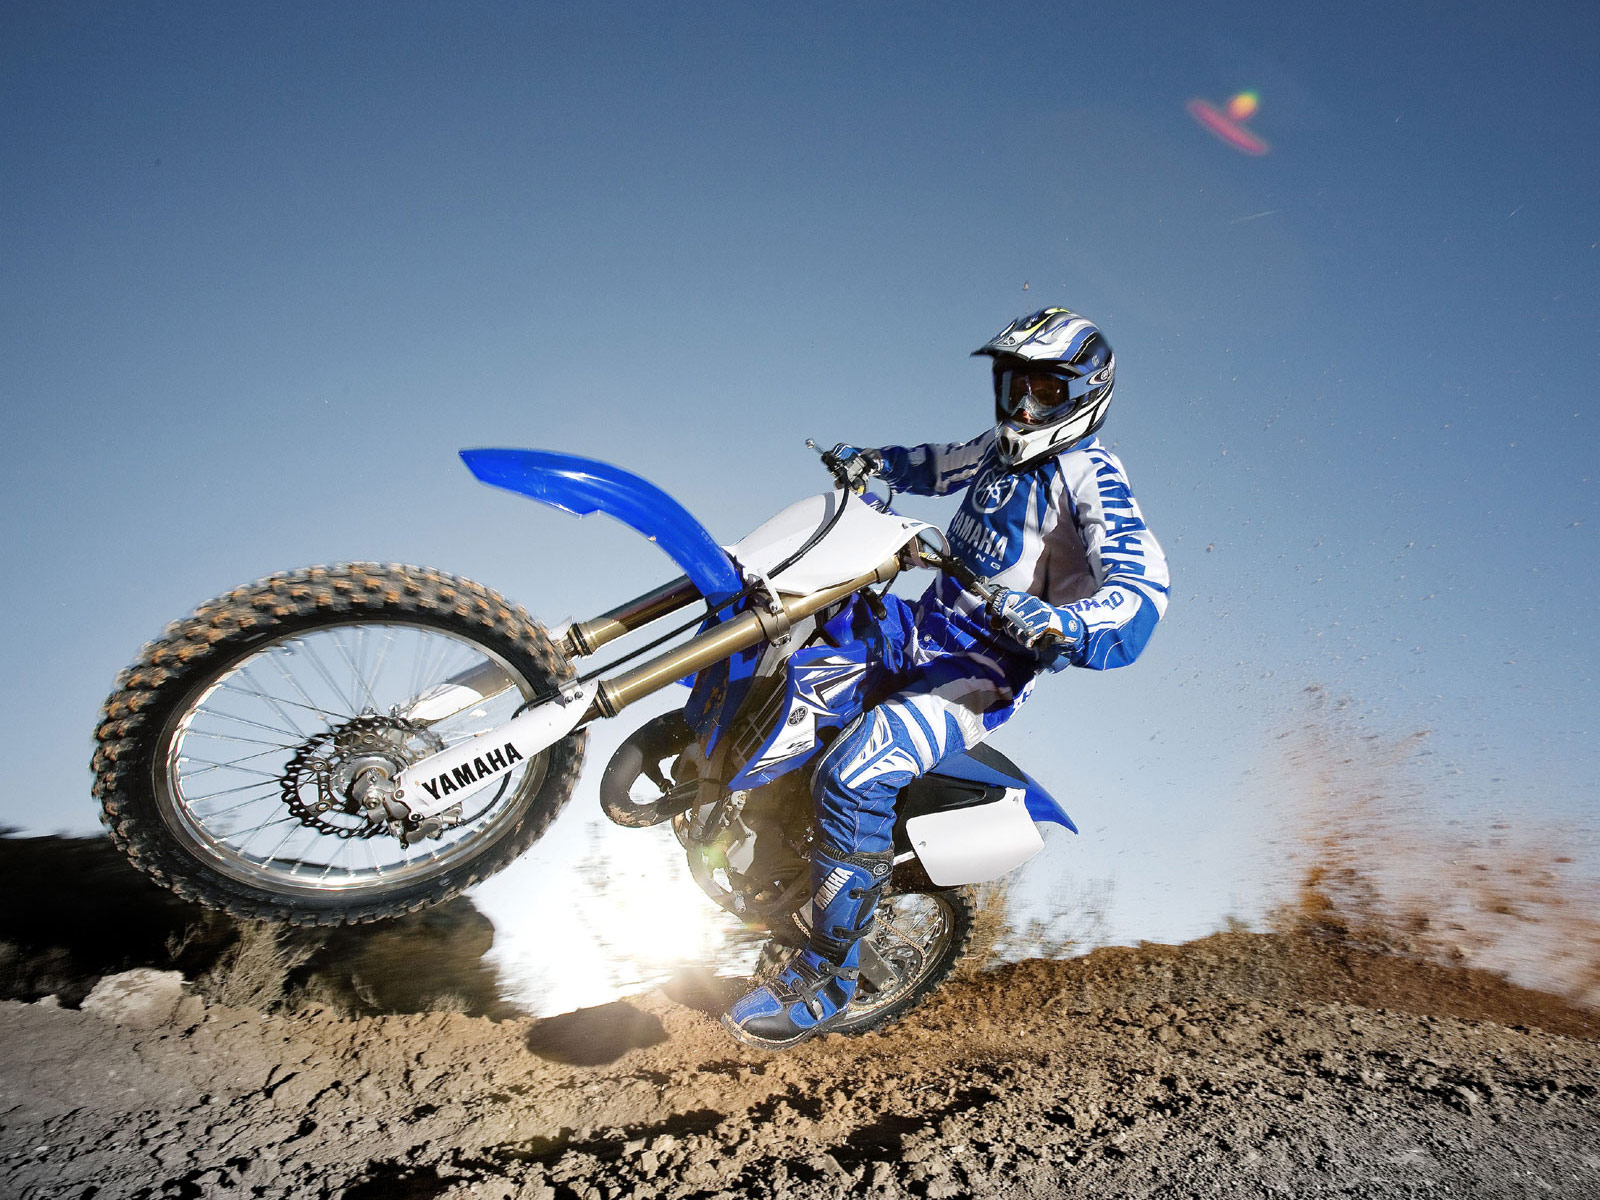 Best Yamaha Bike Race Motocross Wallpaper HD We provide the best 1600x1200